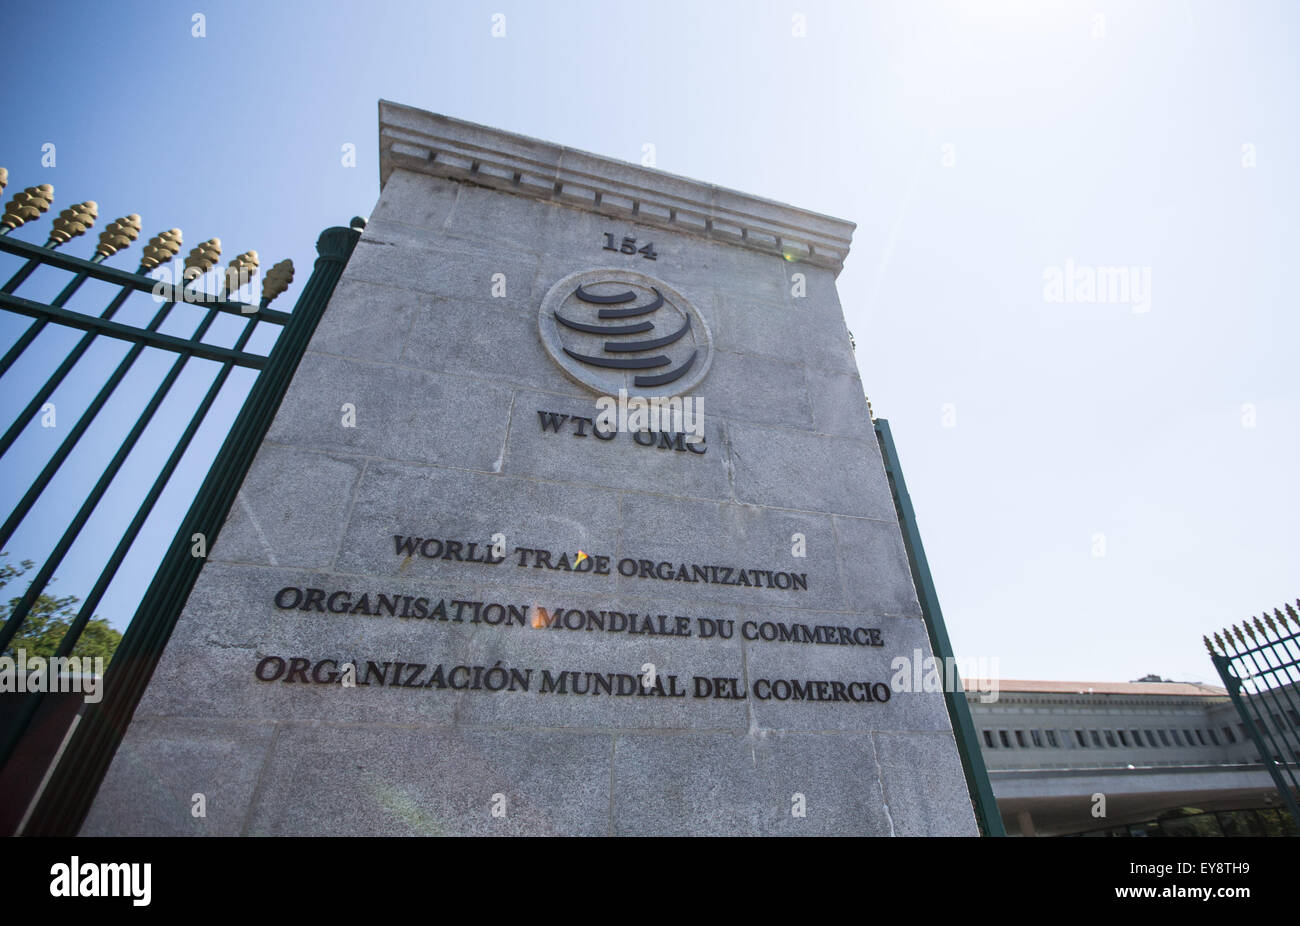 Geneva, Switzerland. 24th July, 2015. The World Trade Organization (WTO) logo is seen at the entrance of the WTO Stock Photo